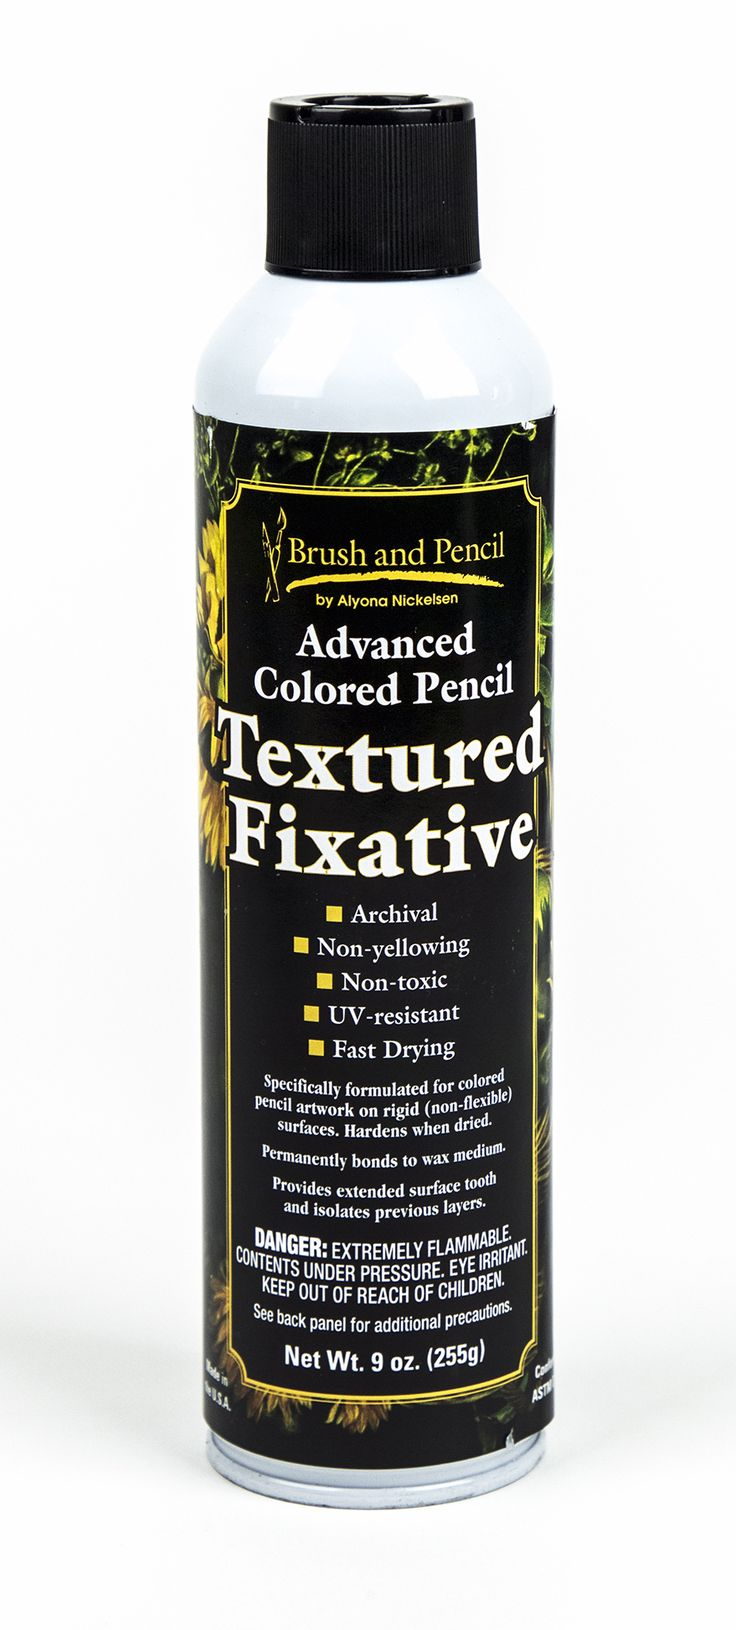 Sherwin williams krylon 0250 sp black truck coating per 6 ea - Not Available For International Shipping Shipping To Continental Us Only Advanced Colored Pencil Textured Fixative